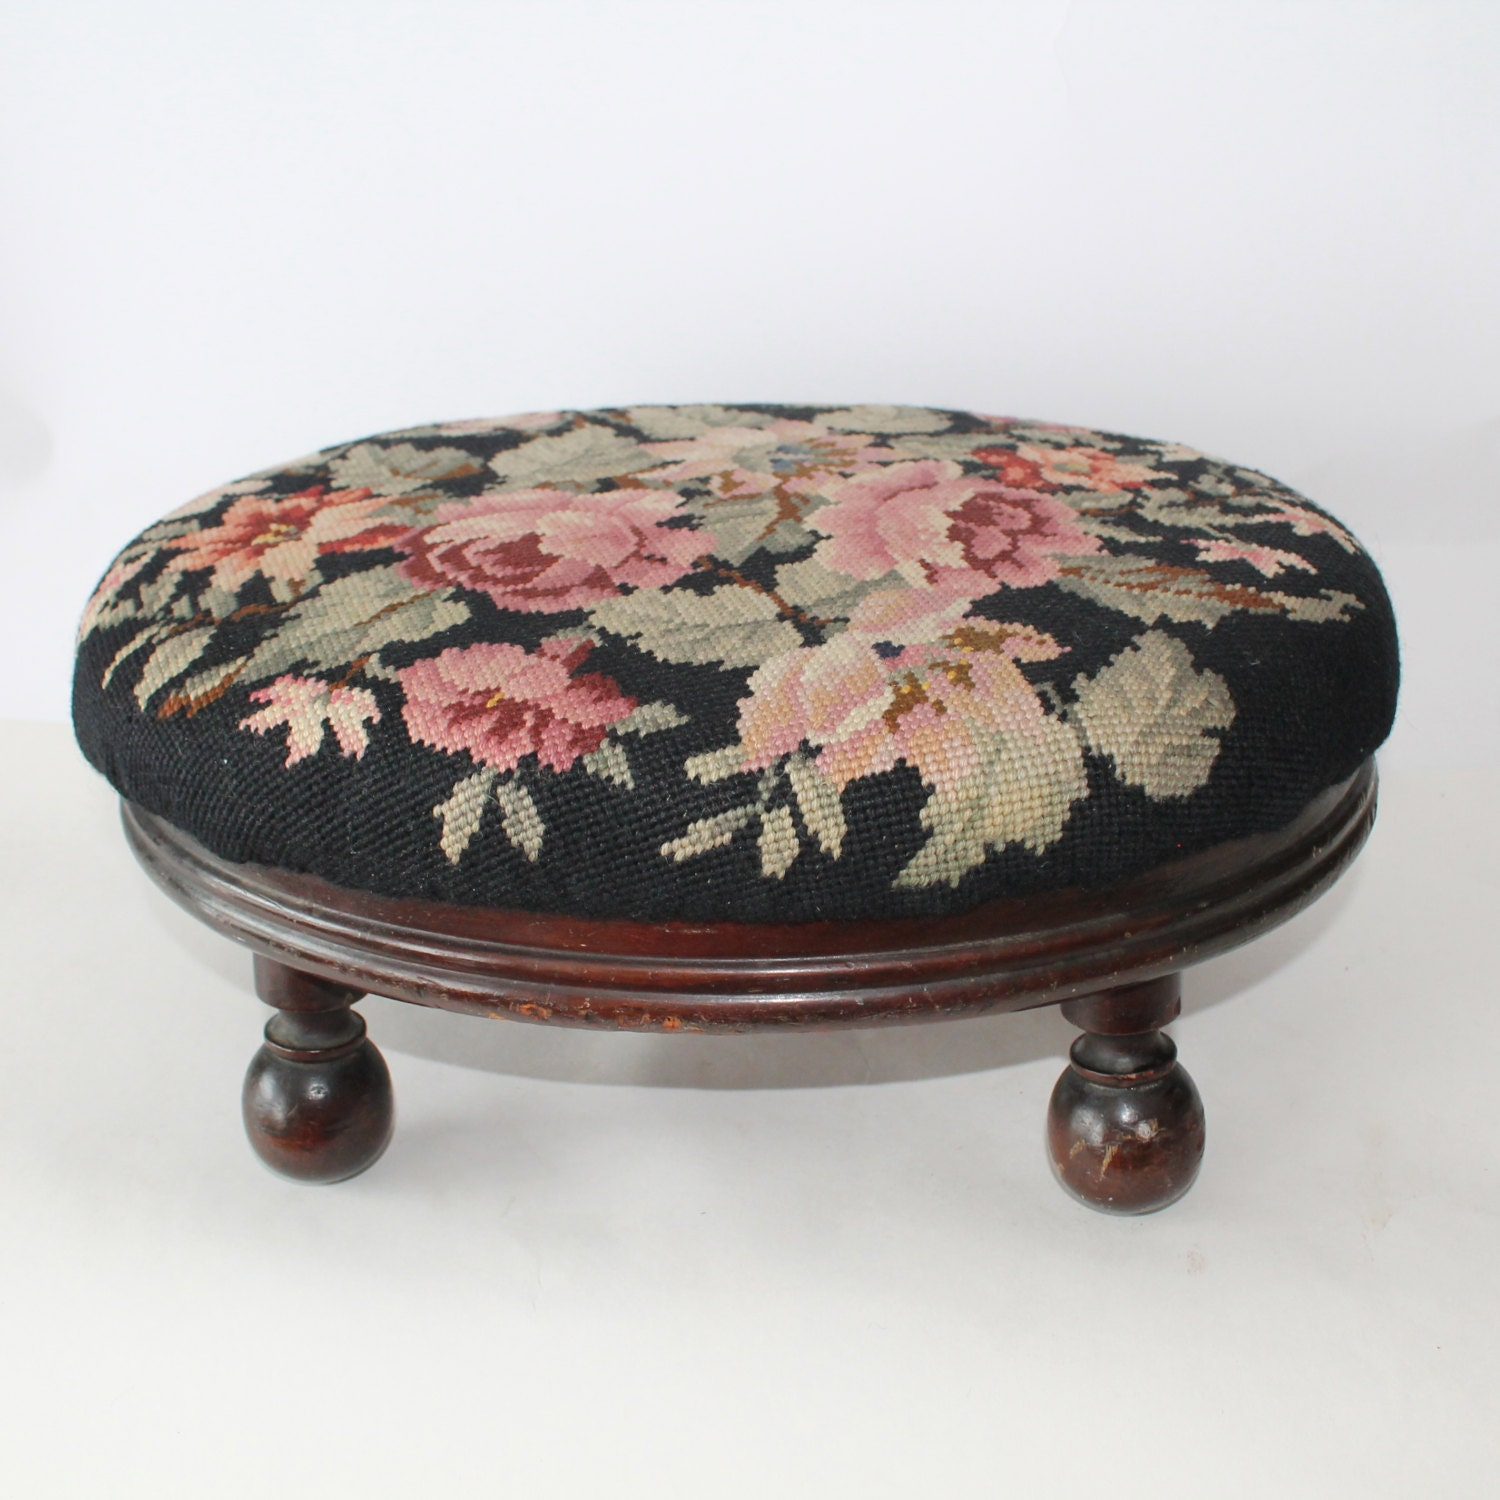 Vintage Needlepoint Footstool Or Foot Rest